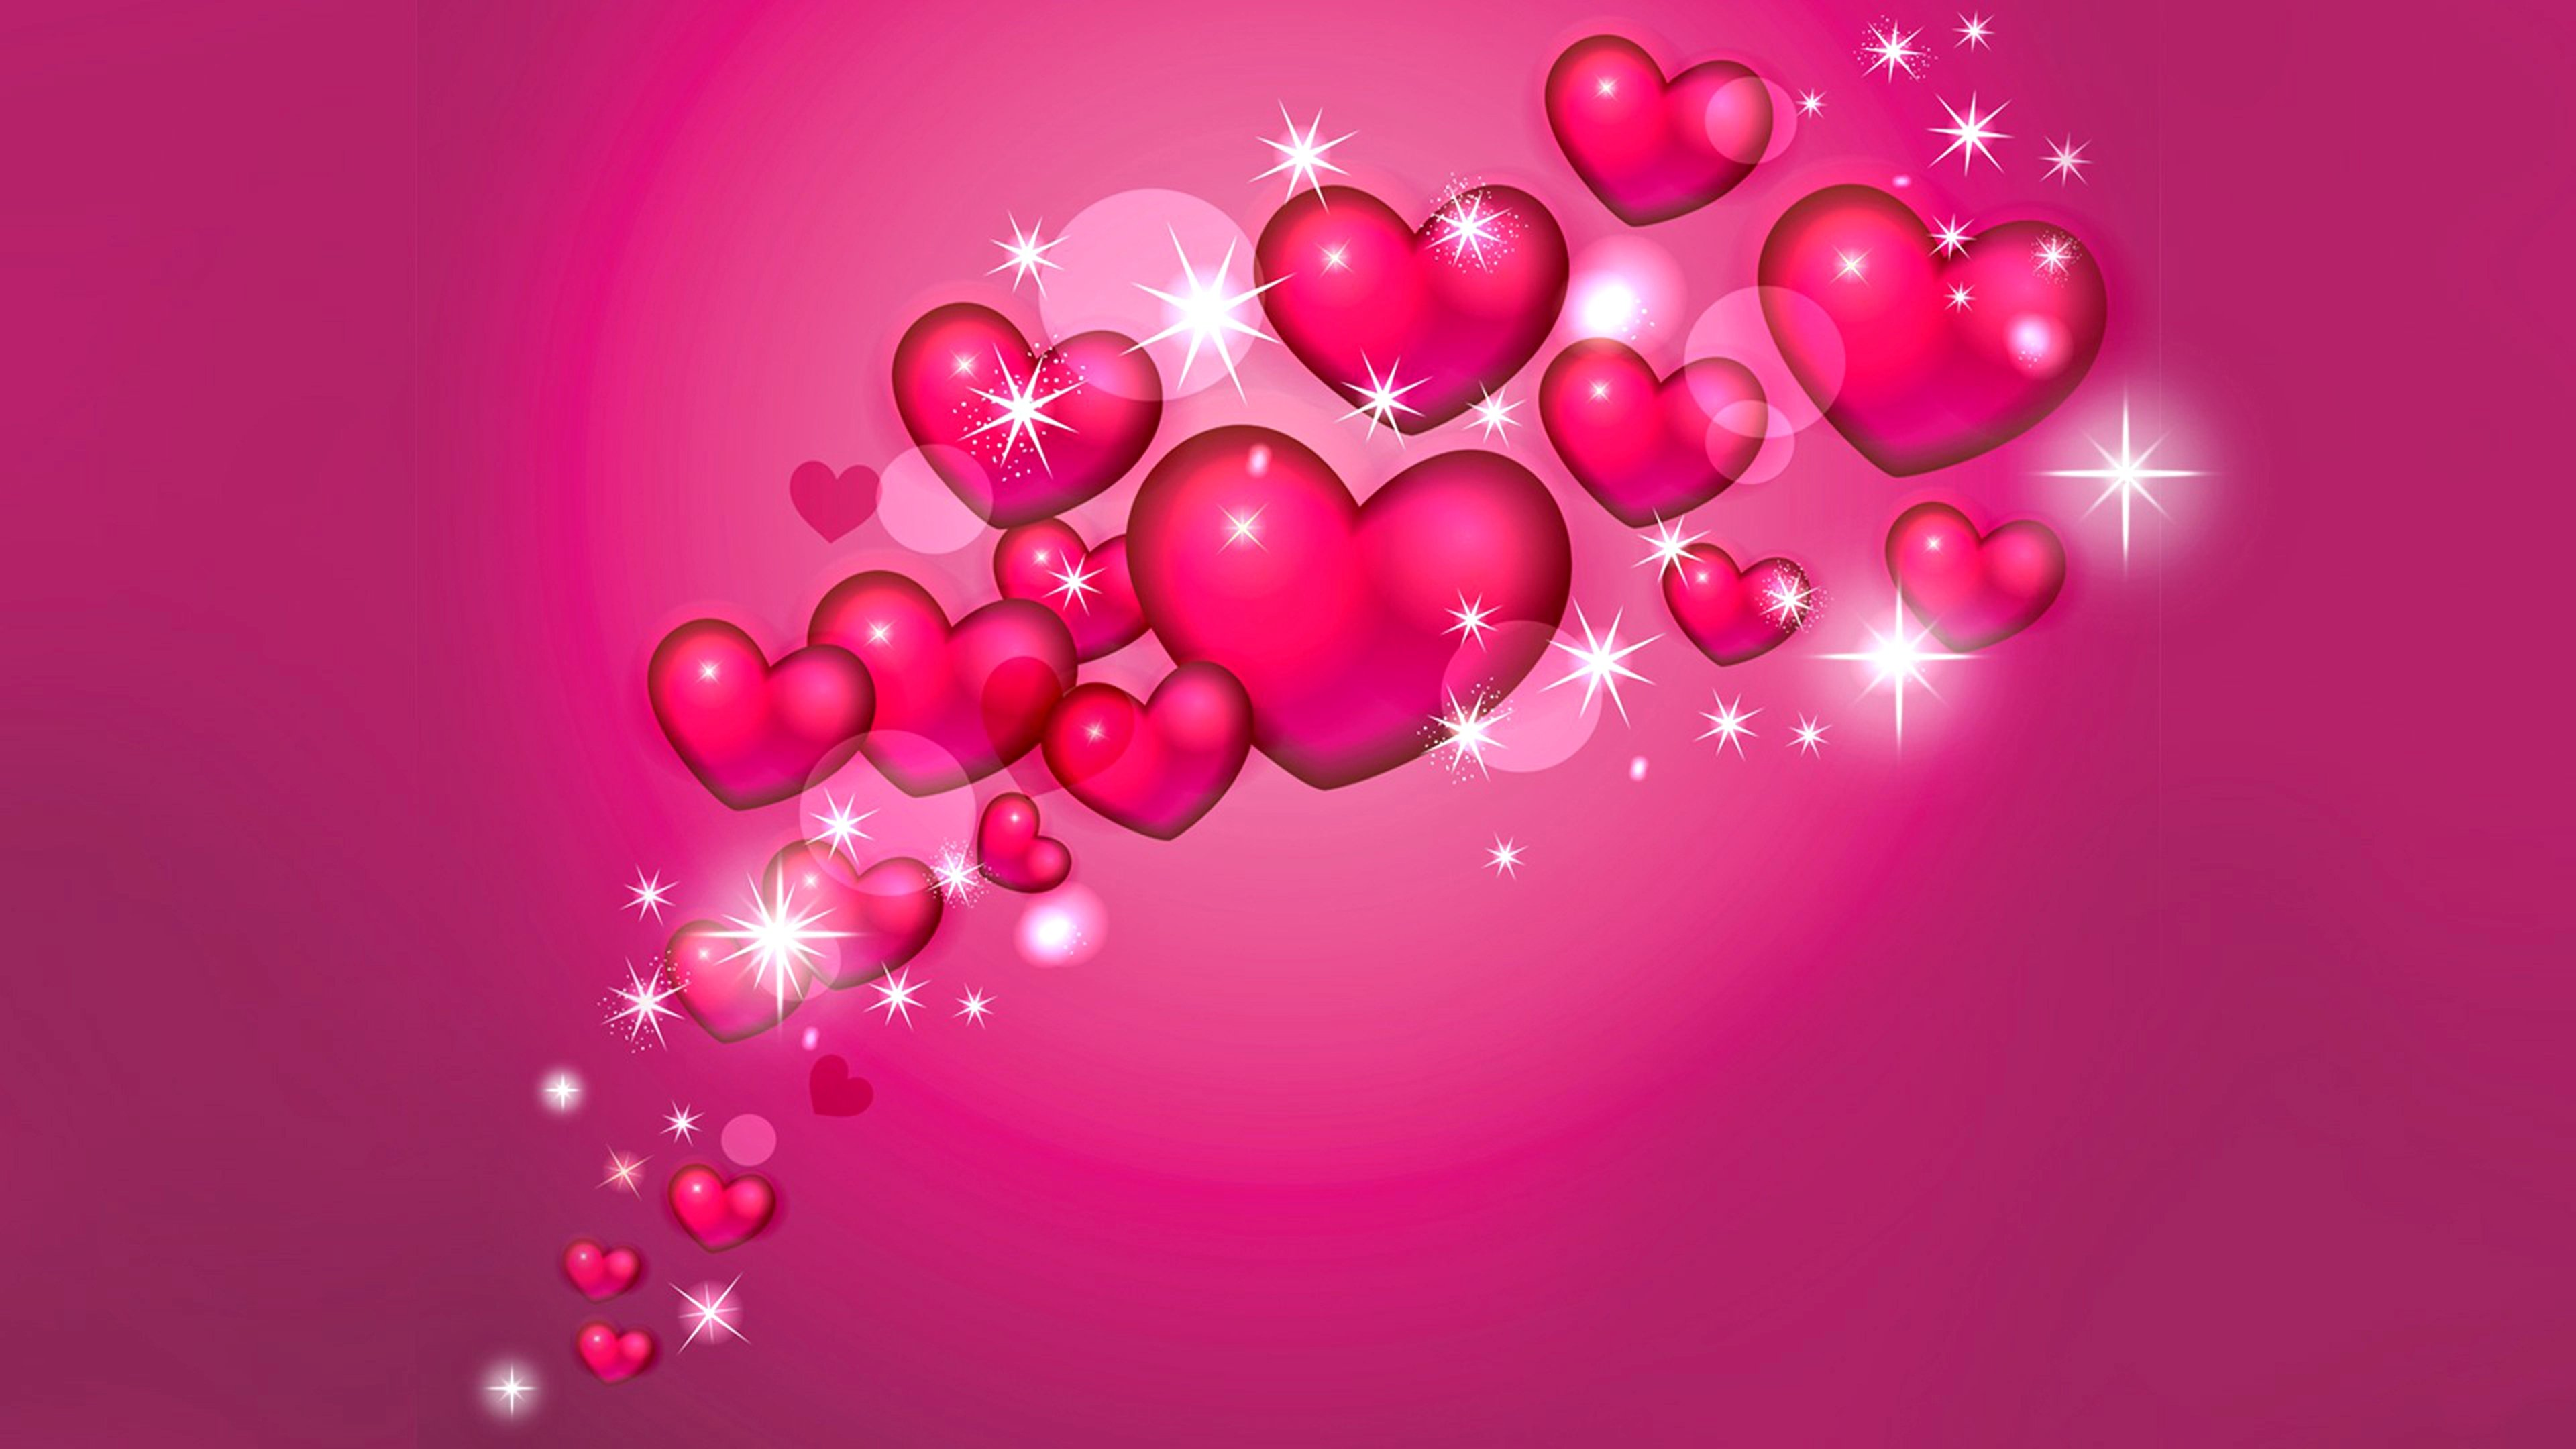 hearts desktop wallpaper - photo #14